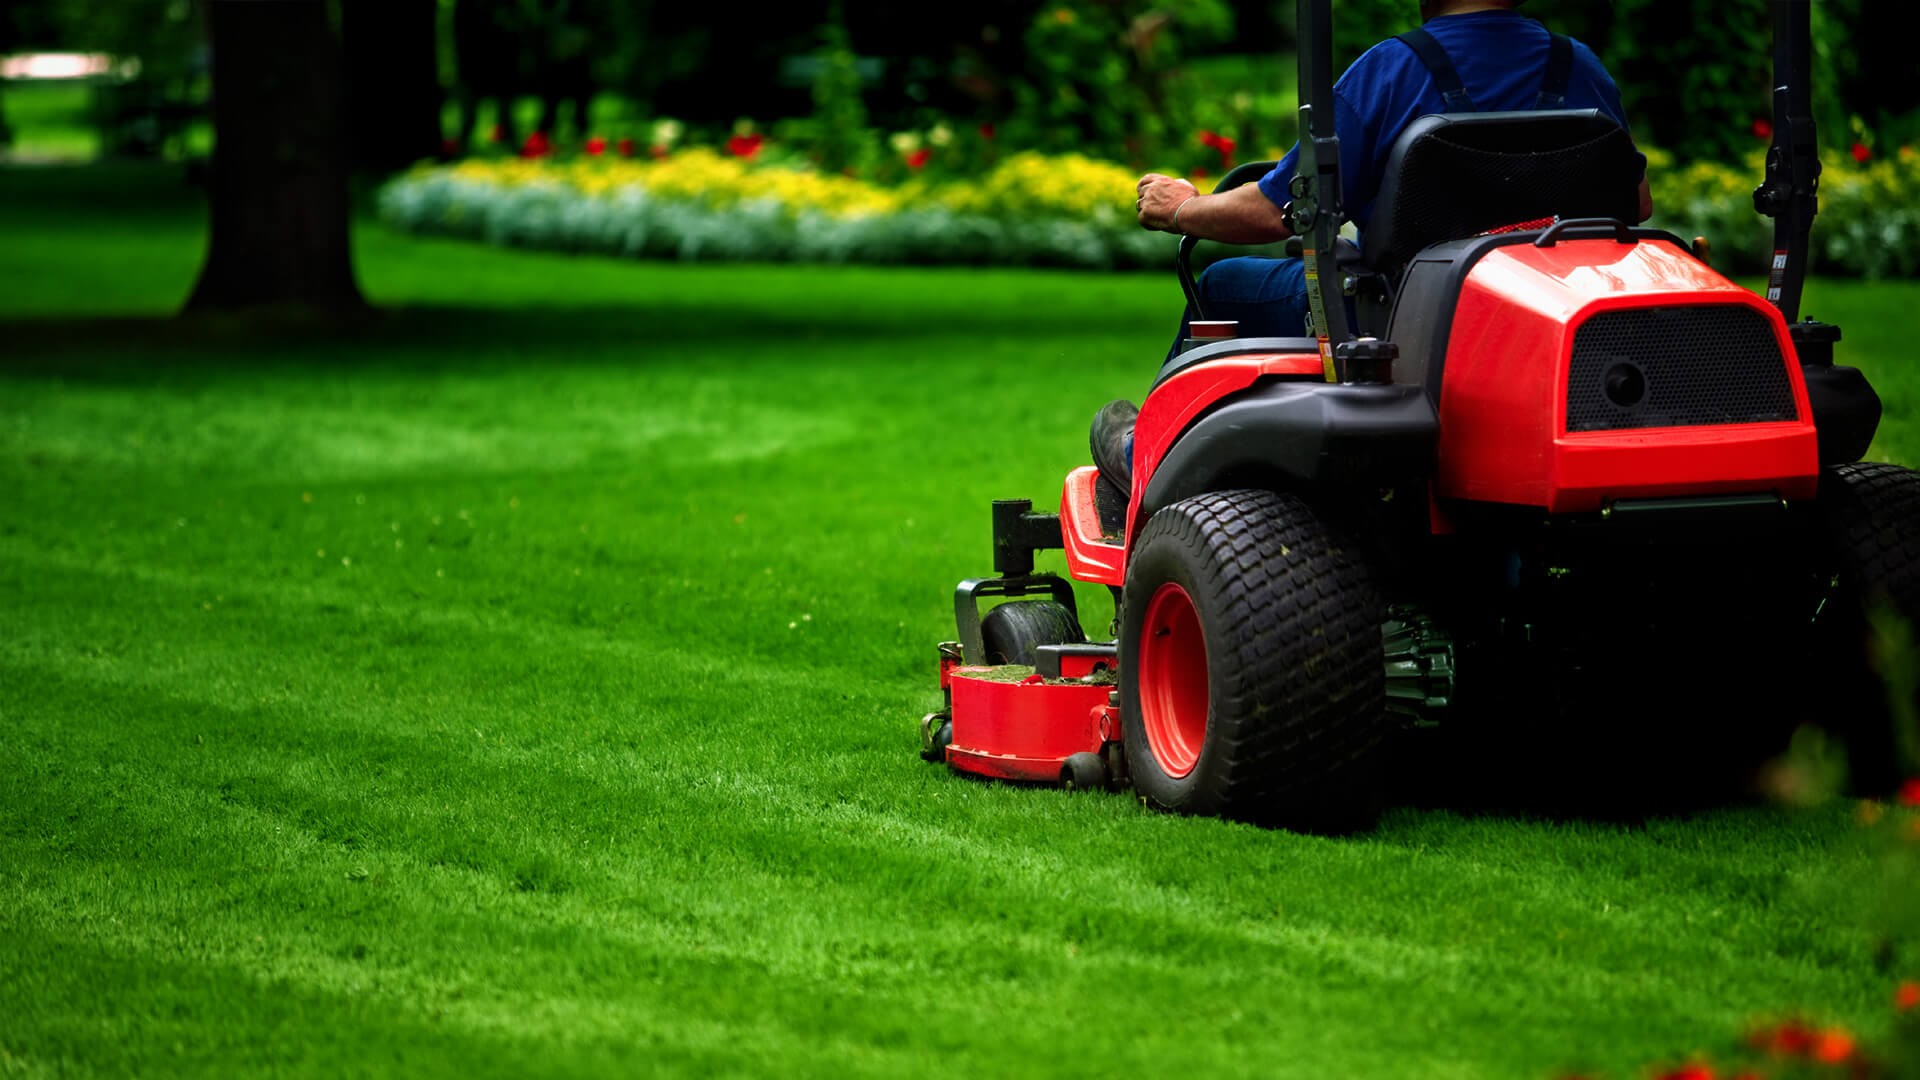 lawn care business names - lawnmower